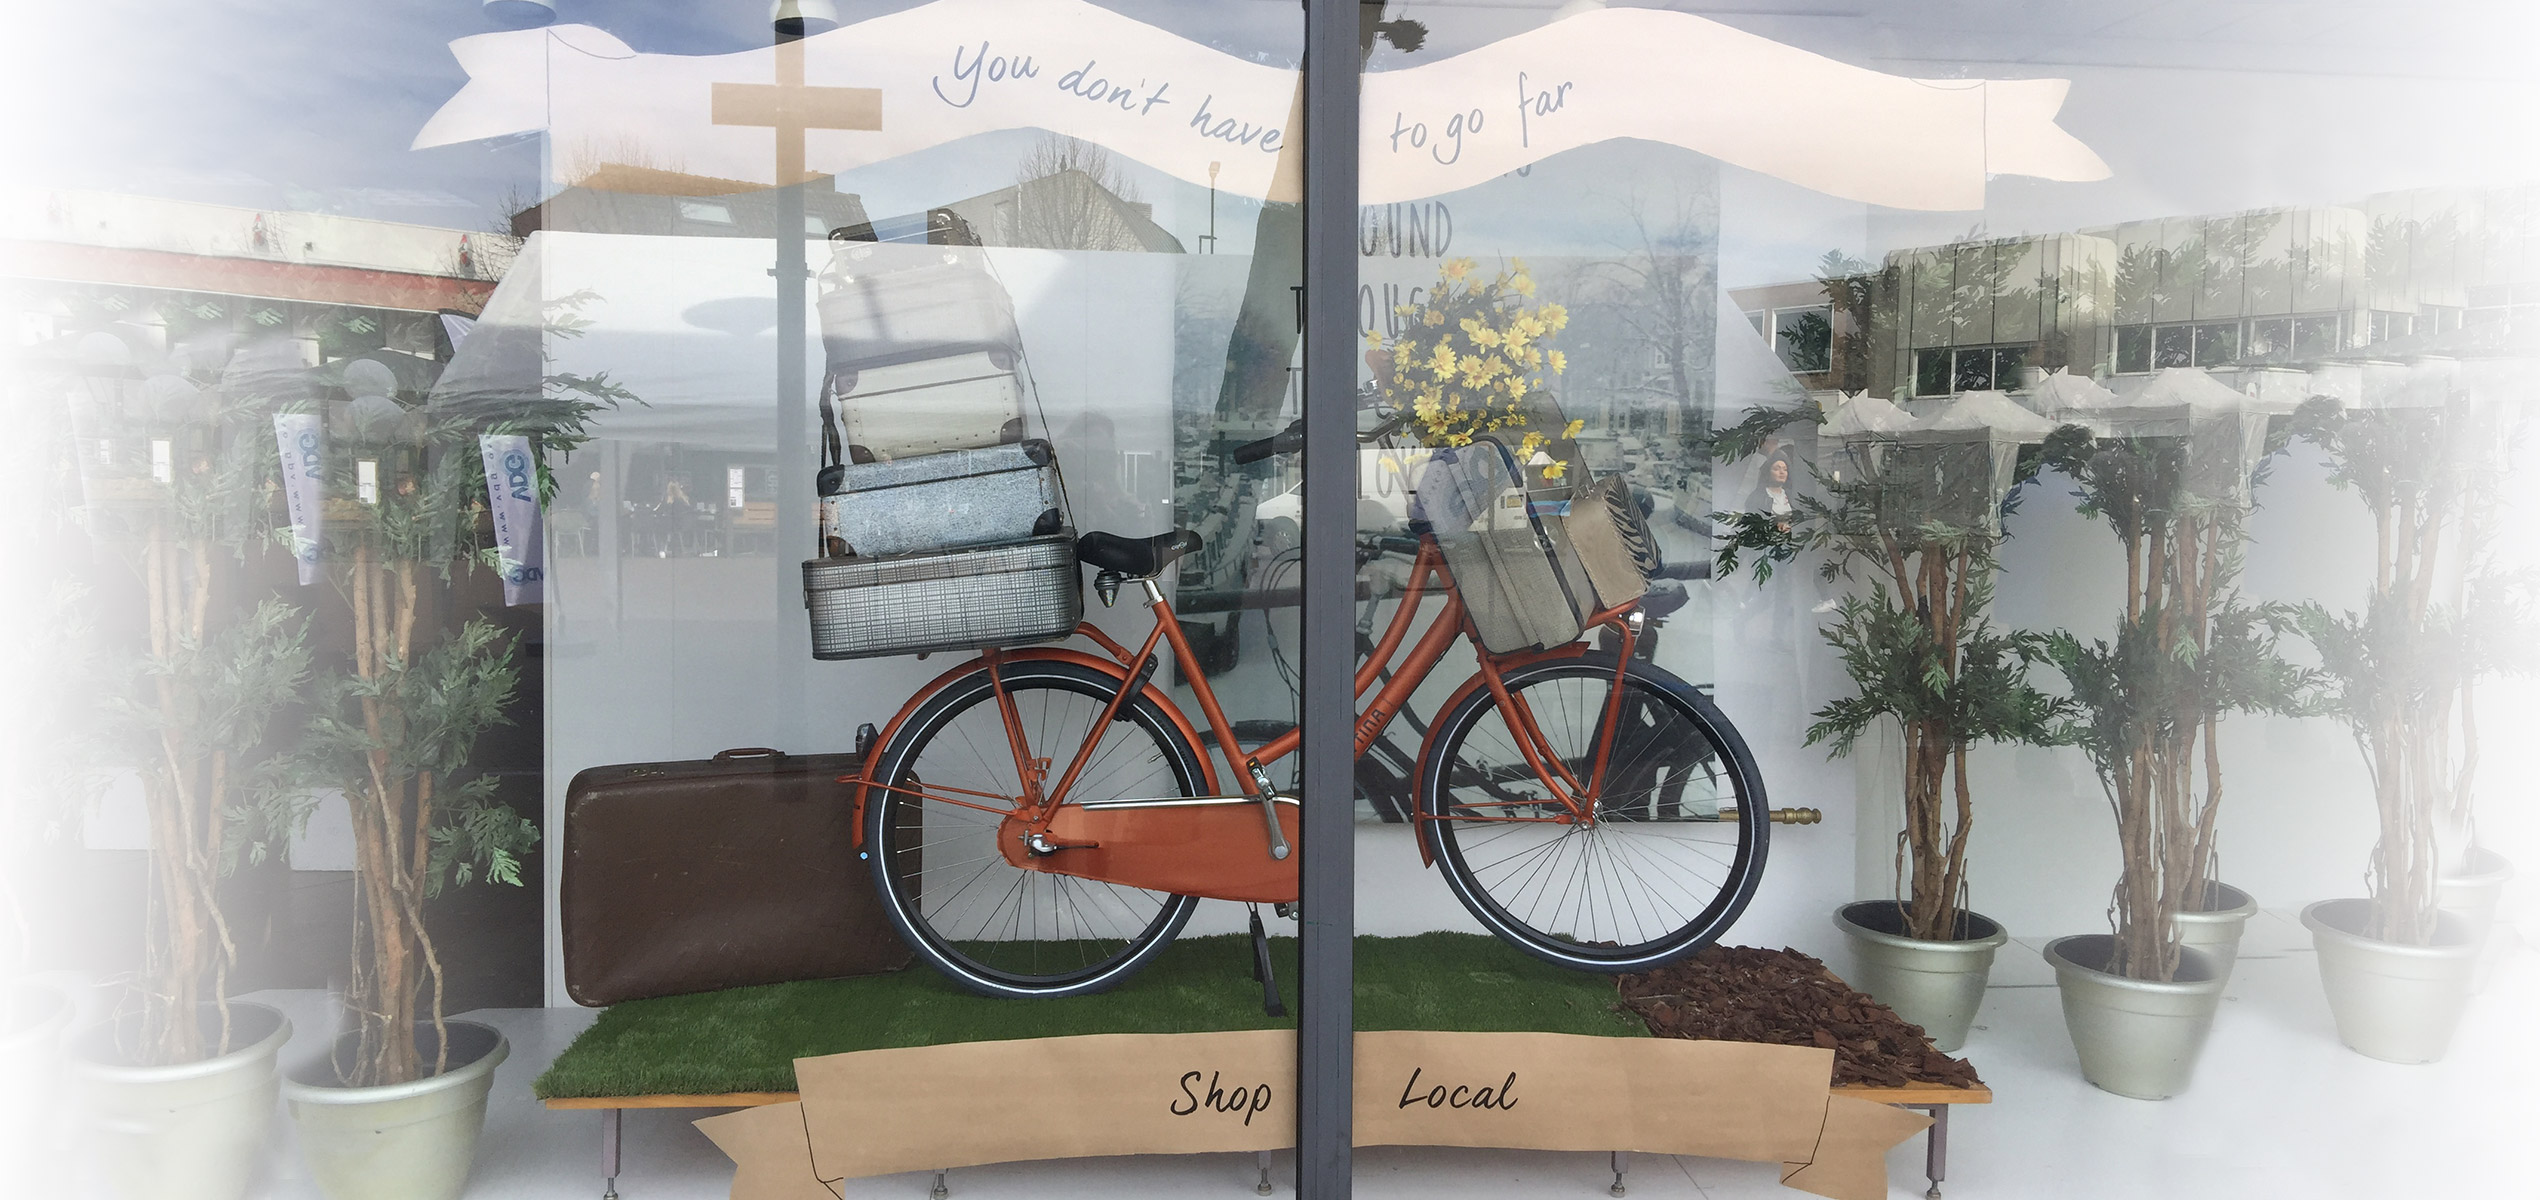 etaleren-restyling-hip-by-sjaron-etalering-shop-local-fietsenzaak